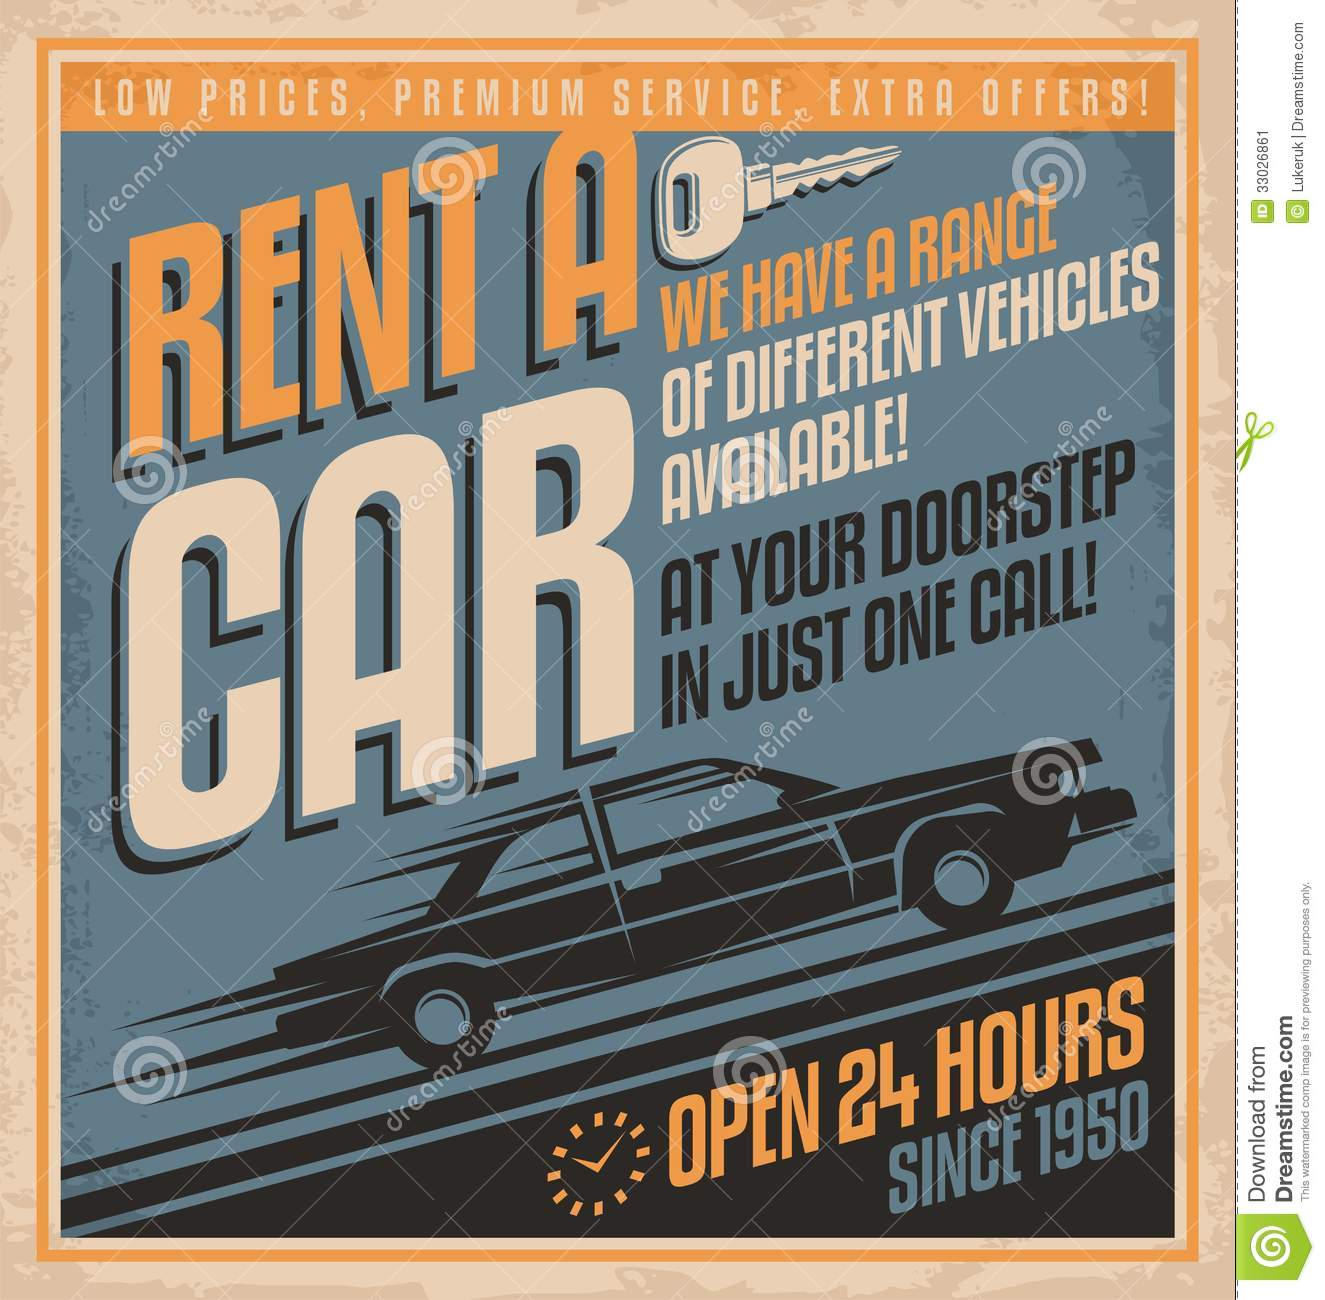 Poster design 50s - Old Fashioned Comics Style Rent A Car Poster Design Stock Image